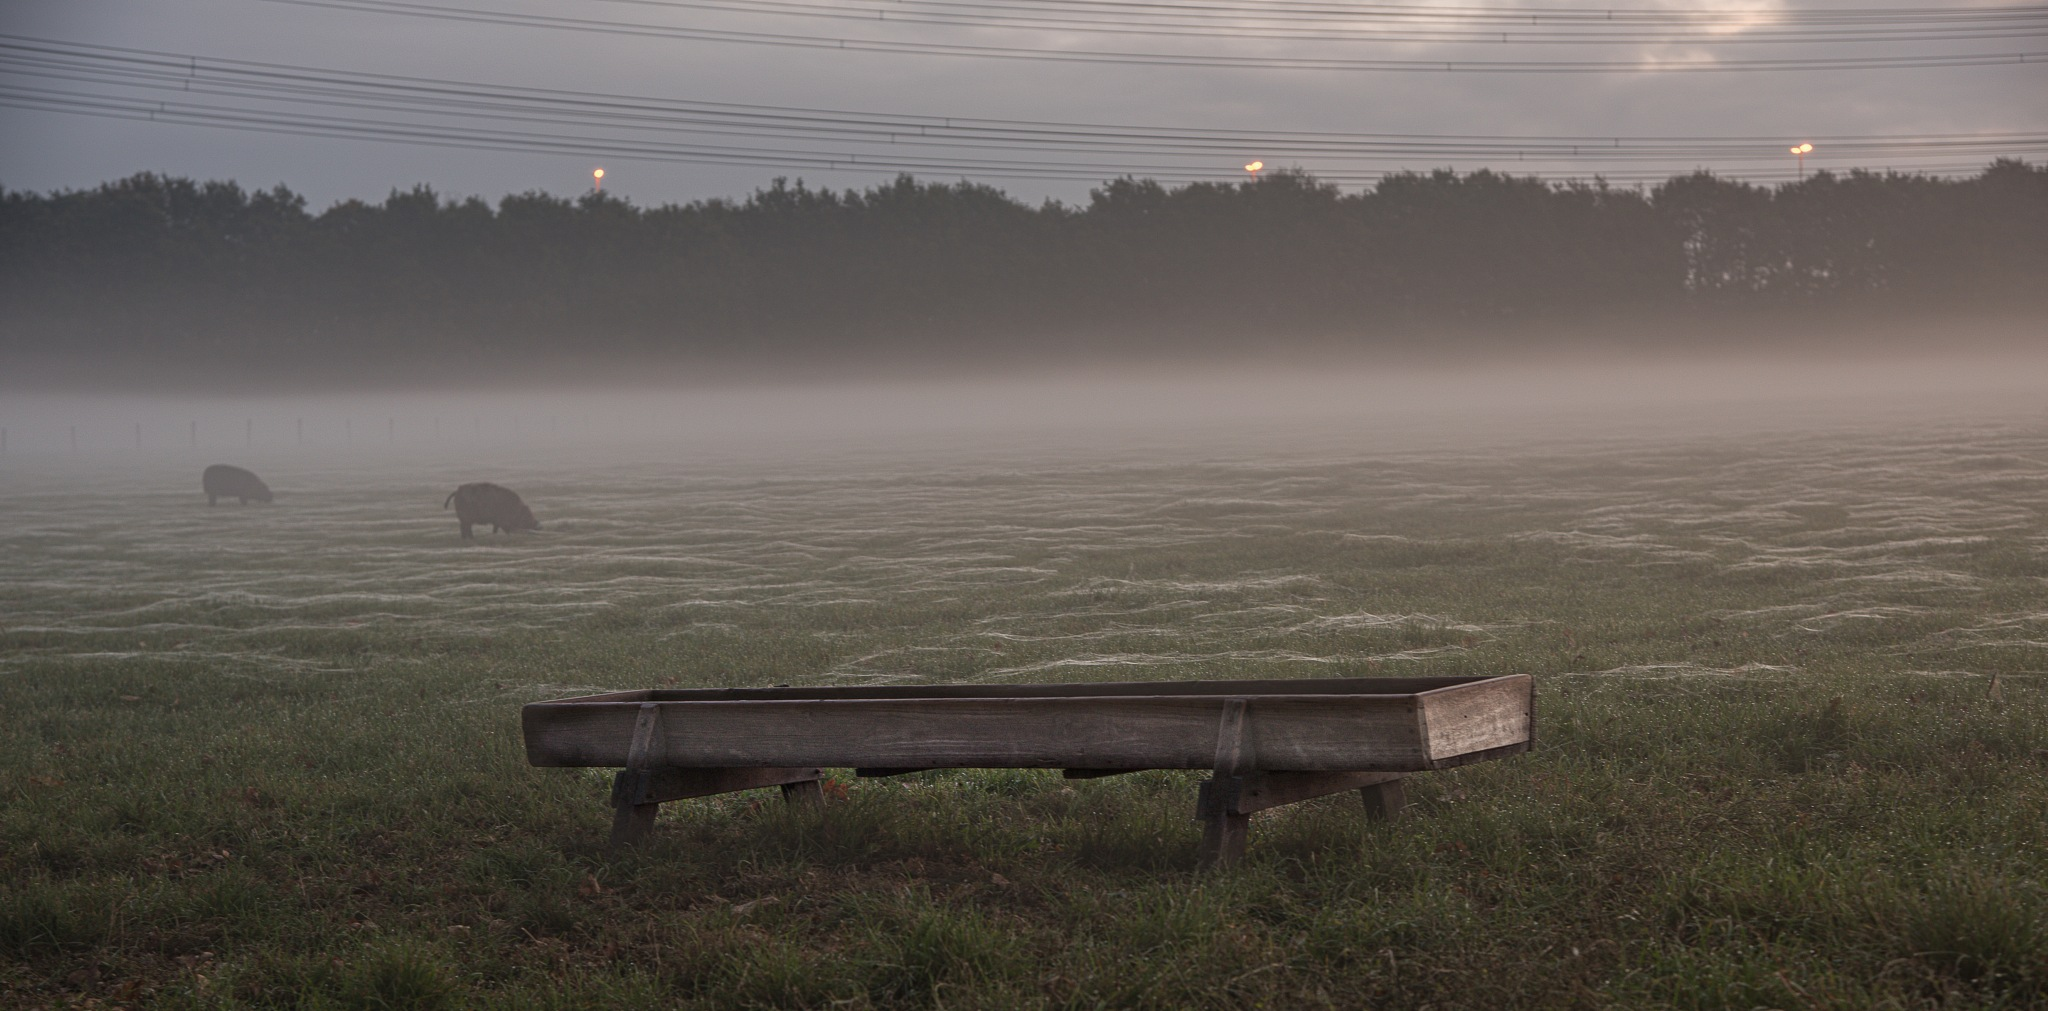 early this morning by Mirjam Slotman-Martin